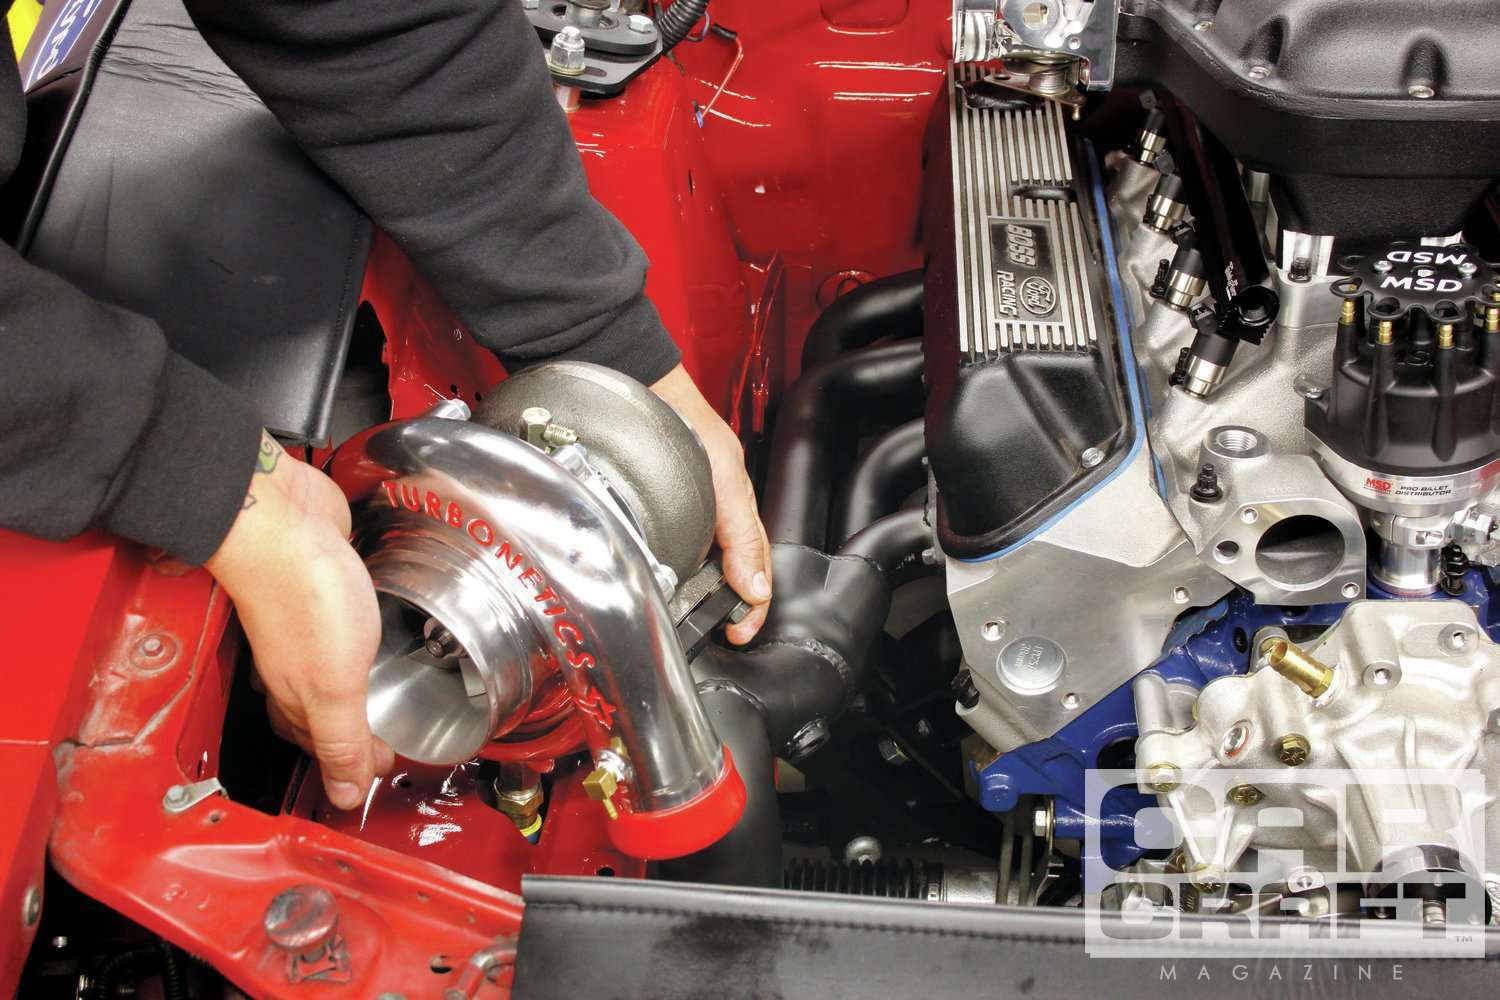 The larger turbo crashed into the inner fender because of its larger housing. The increased height of the exhaust port on the Z363 also moved the downpipe and crossover positions, requiring some fabrication.